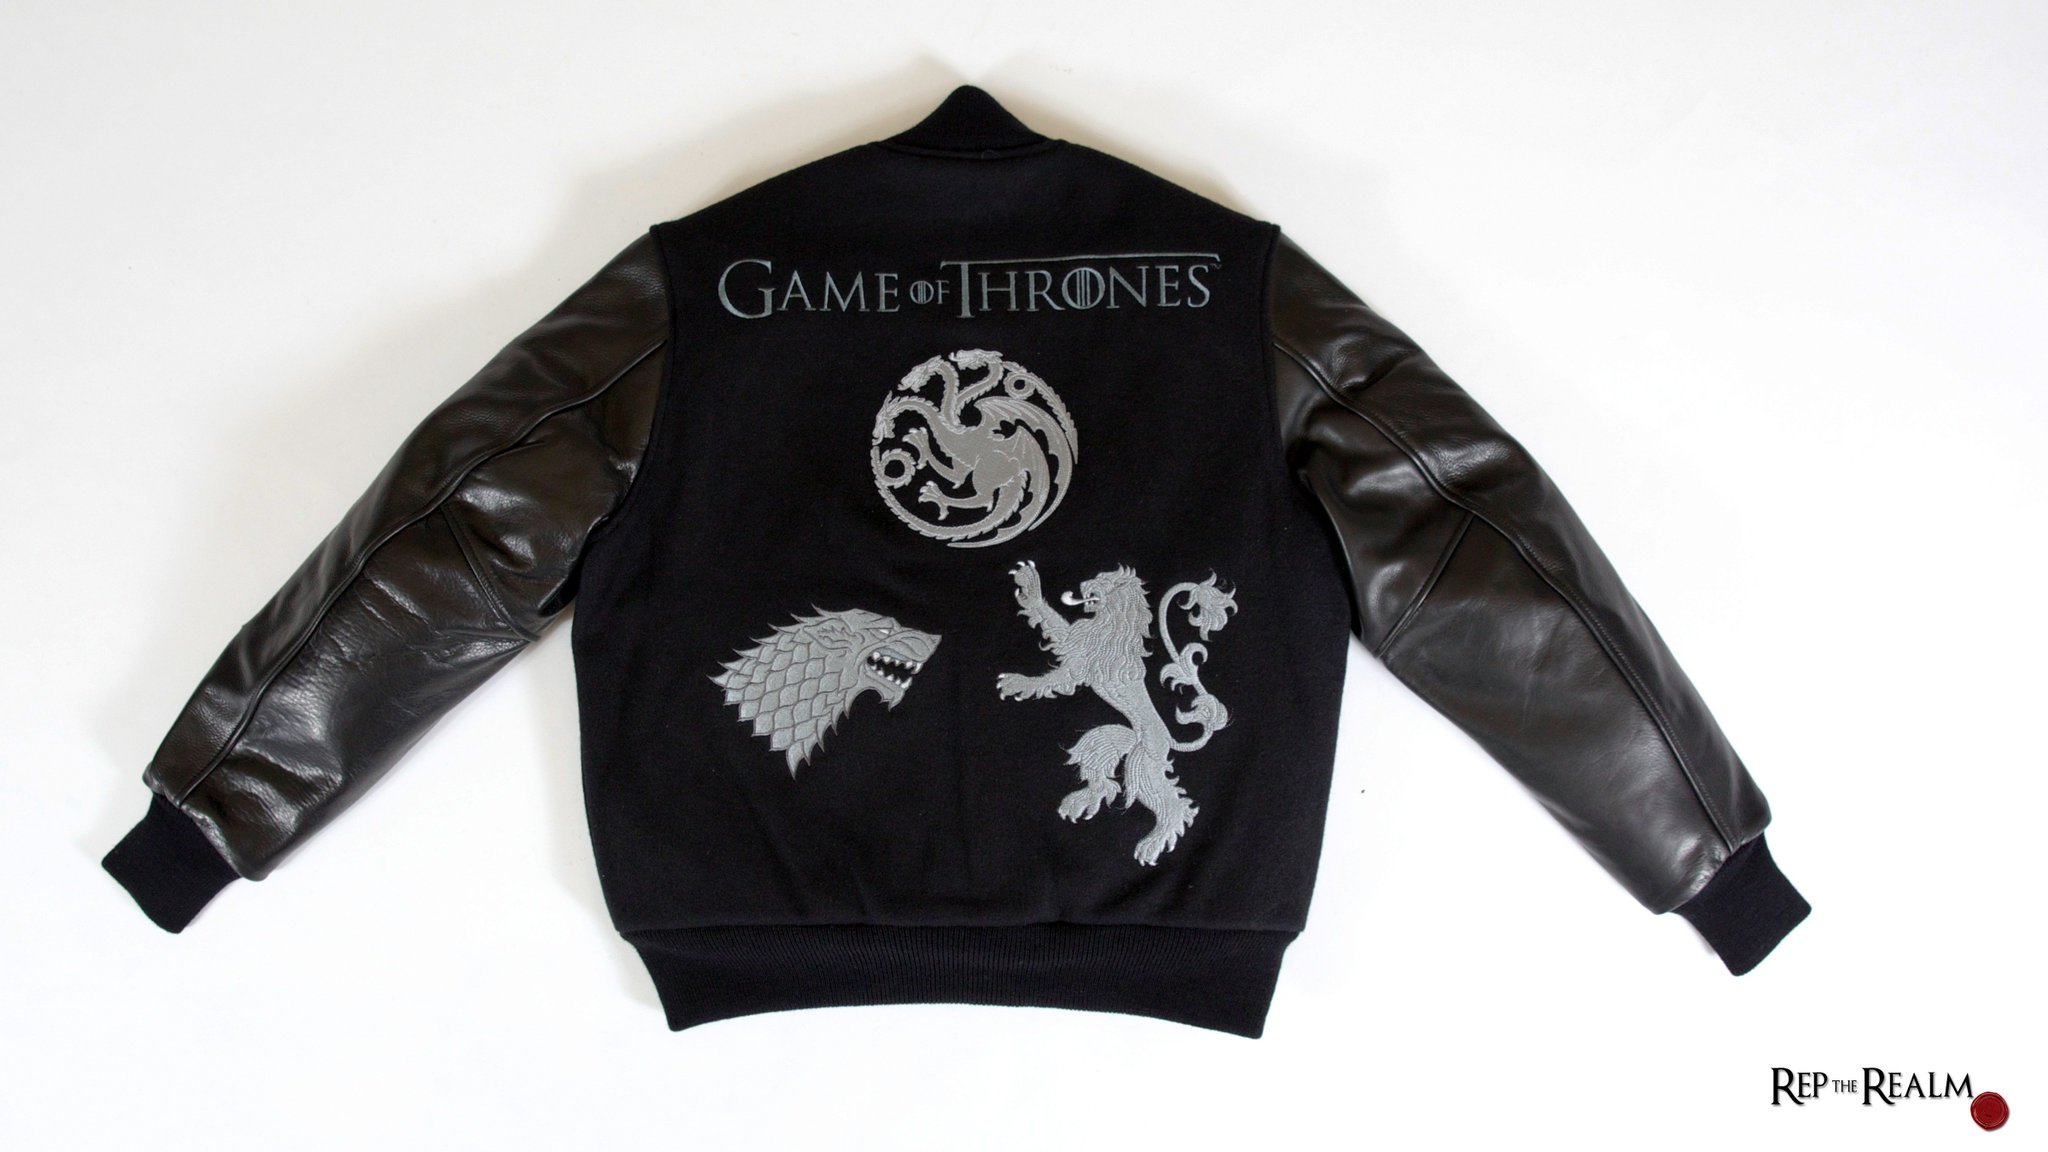 #ReptheRealm Check out how @bbcicecream brings #GameofThrones family loyalty to the varsity jacket. https://t.co/jVNRv9QfXw